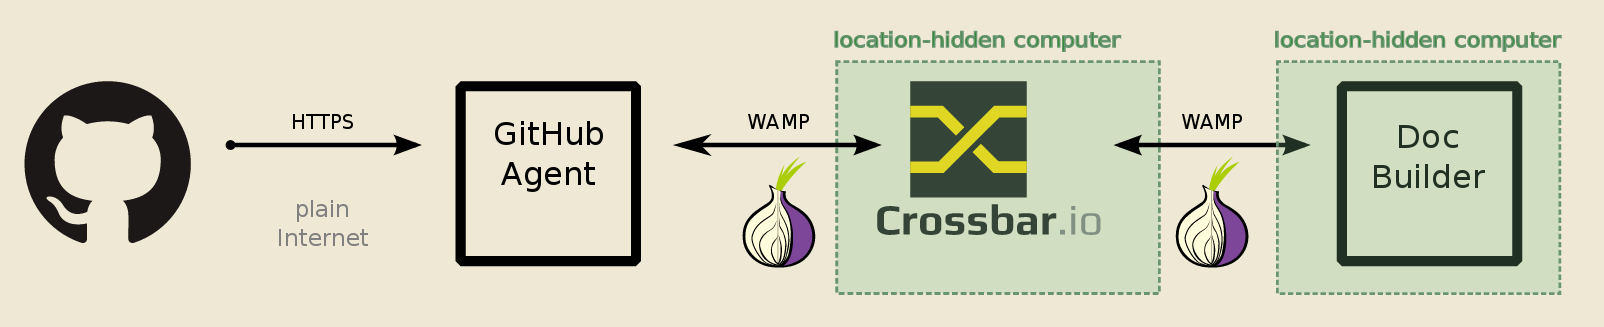 Secure Messaging with Onion Services, a How-To | Tor Blog